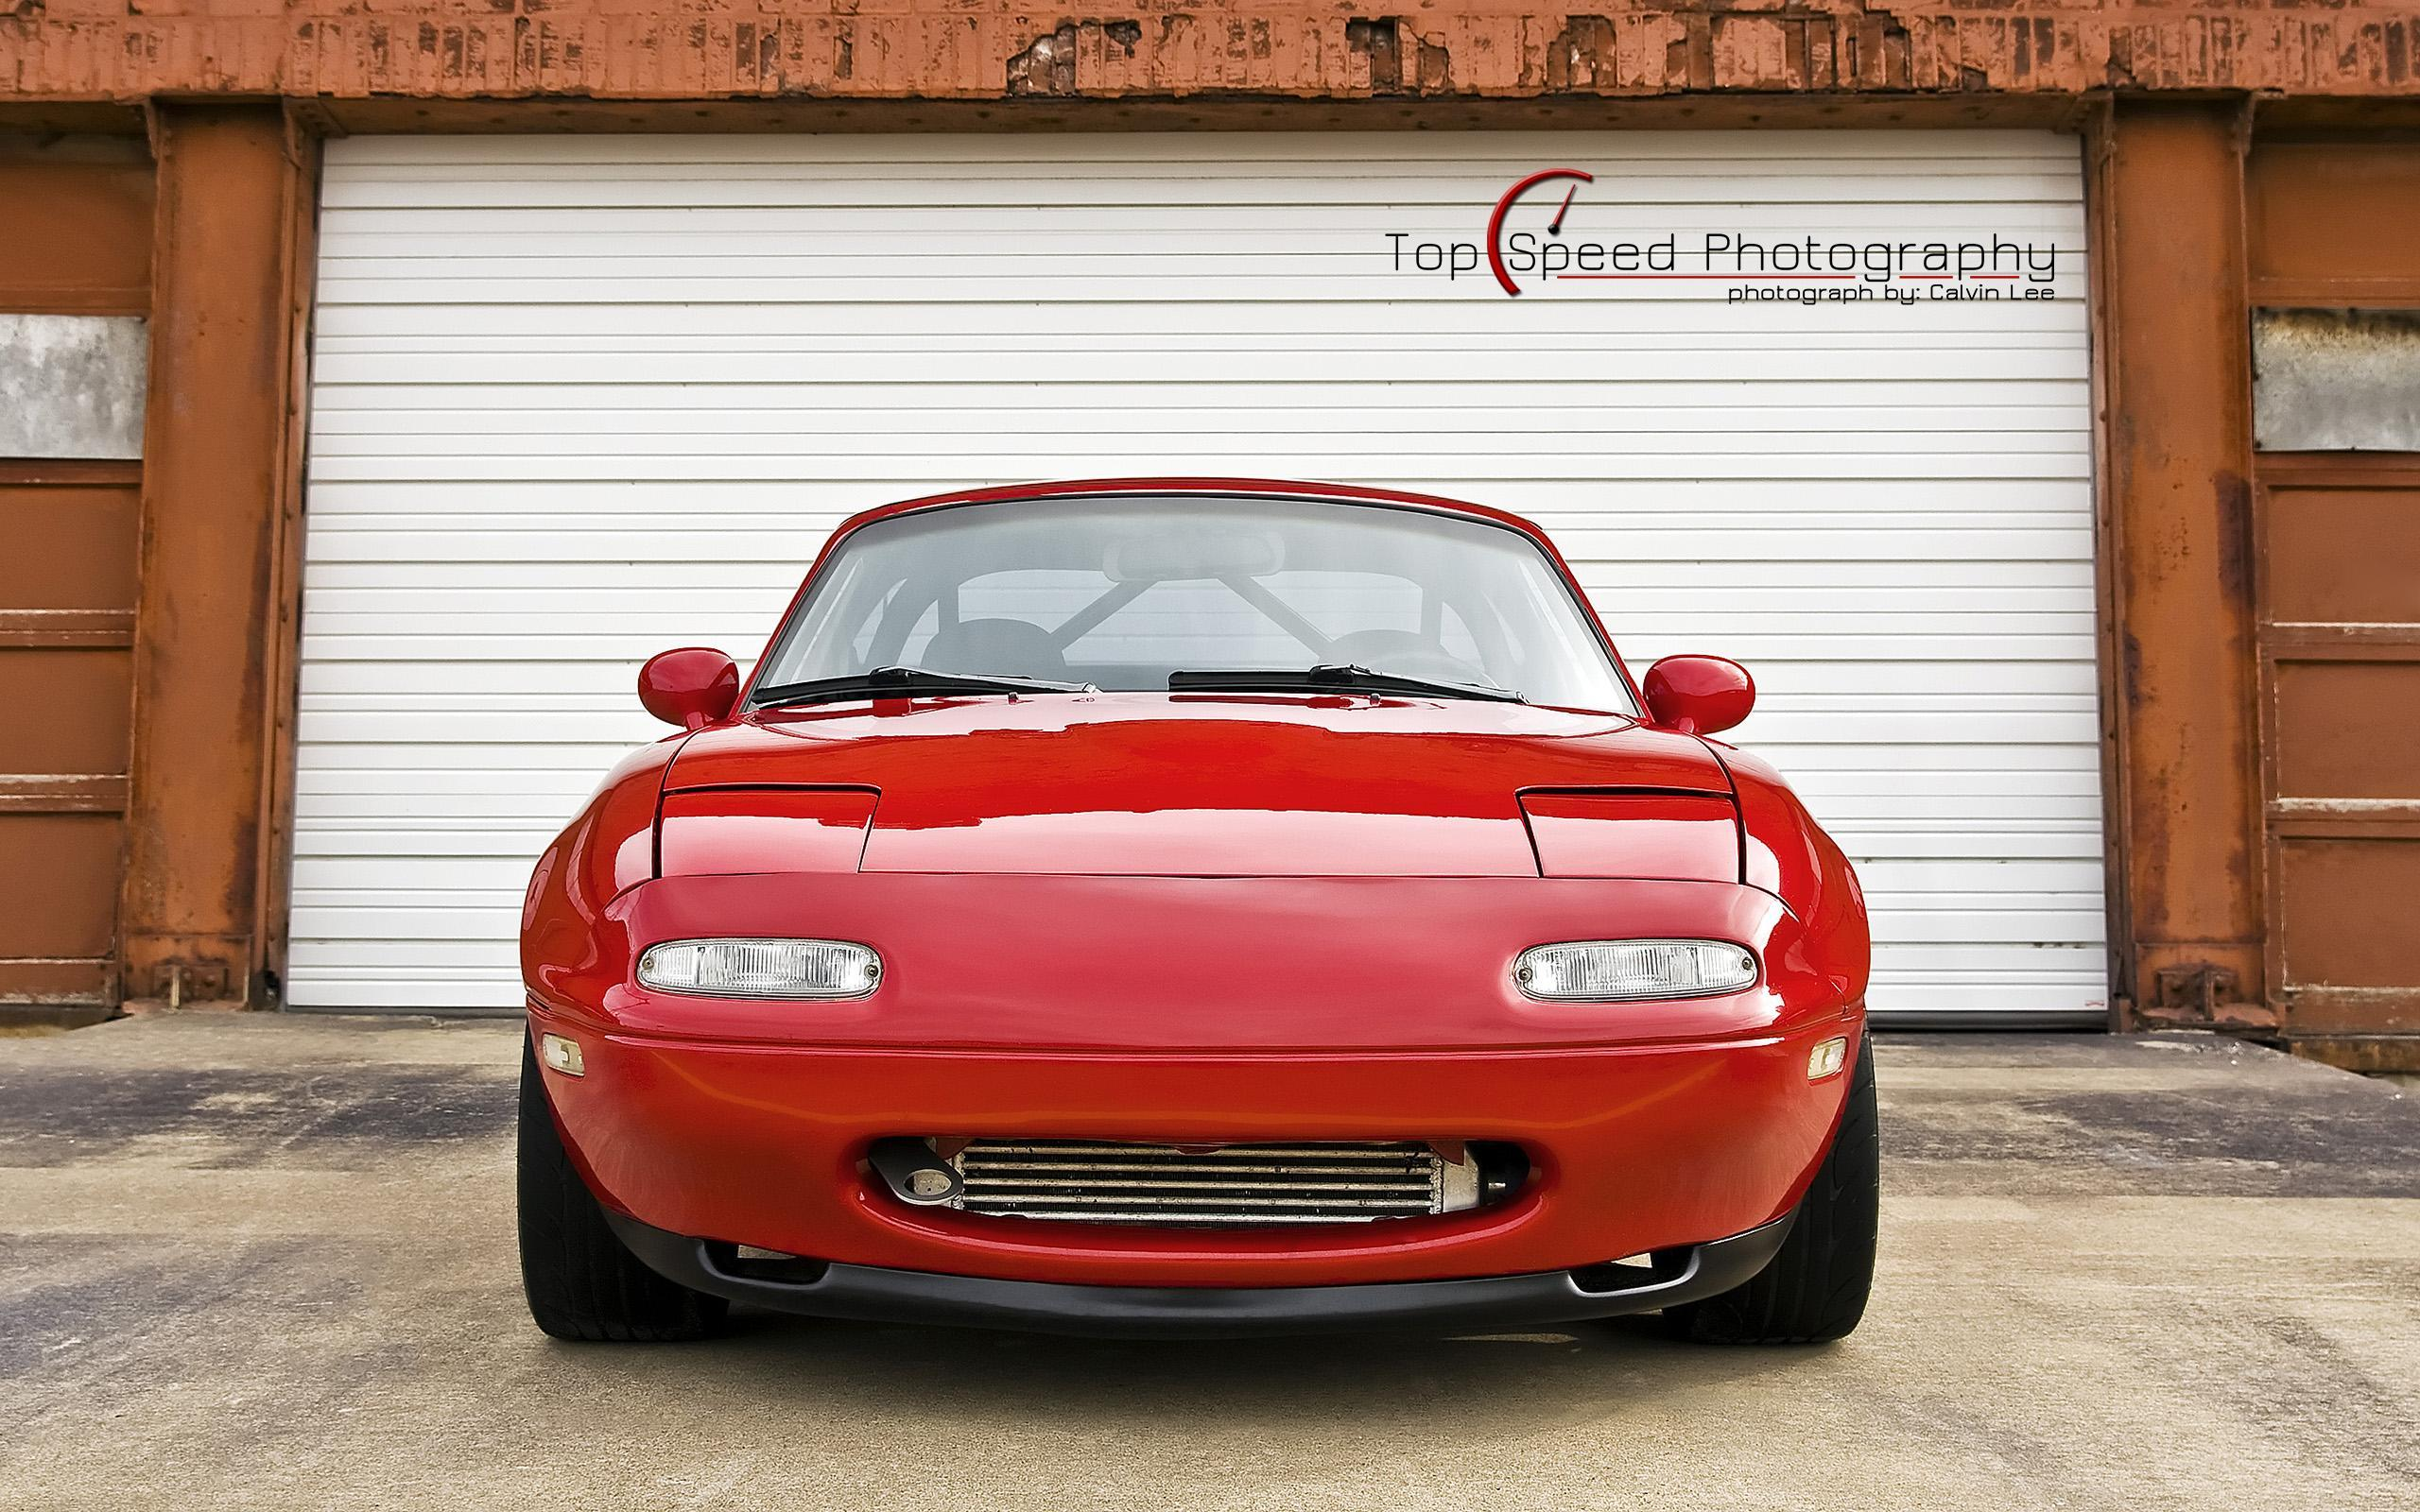 Red 1995 Mazda Miata wallpaper | cars | Wallpaper Better